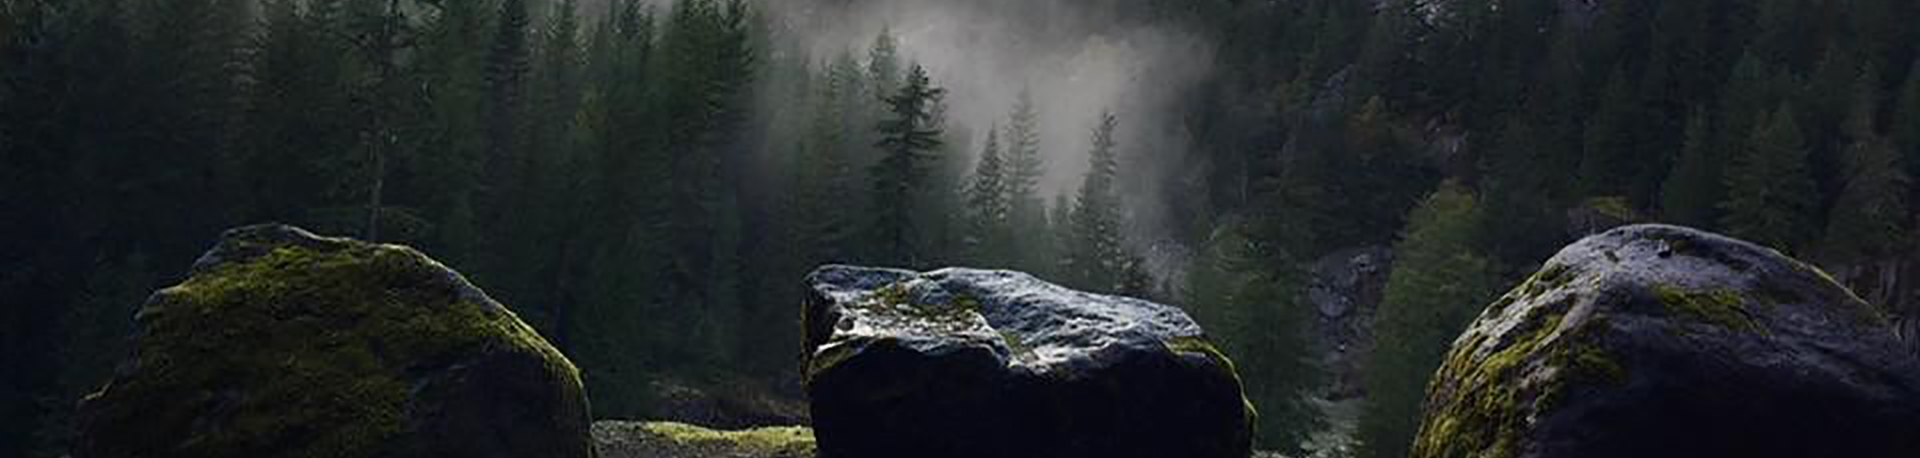 three boulders symmetrically spaced looking out over a foggy mountains covered in trees